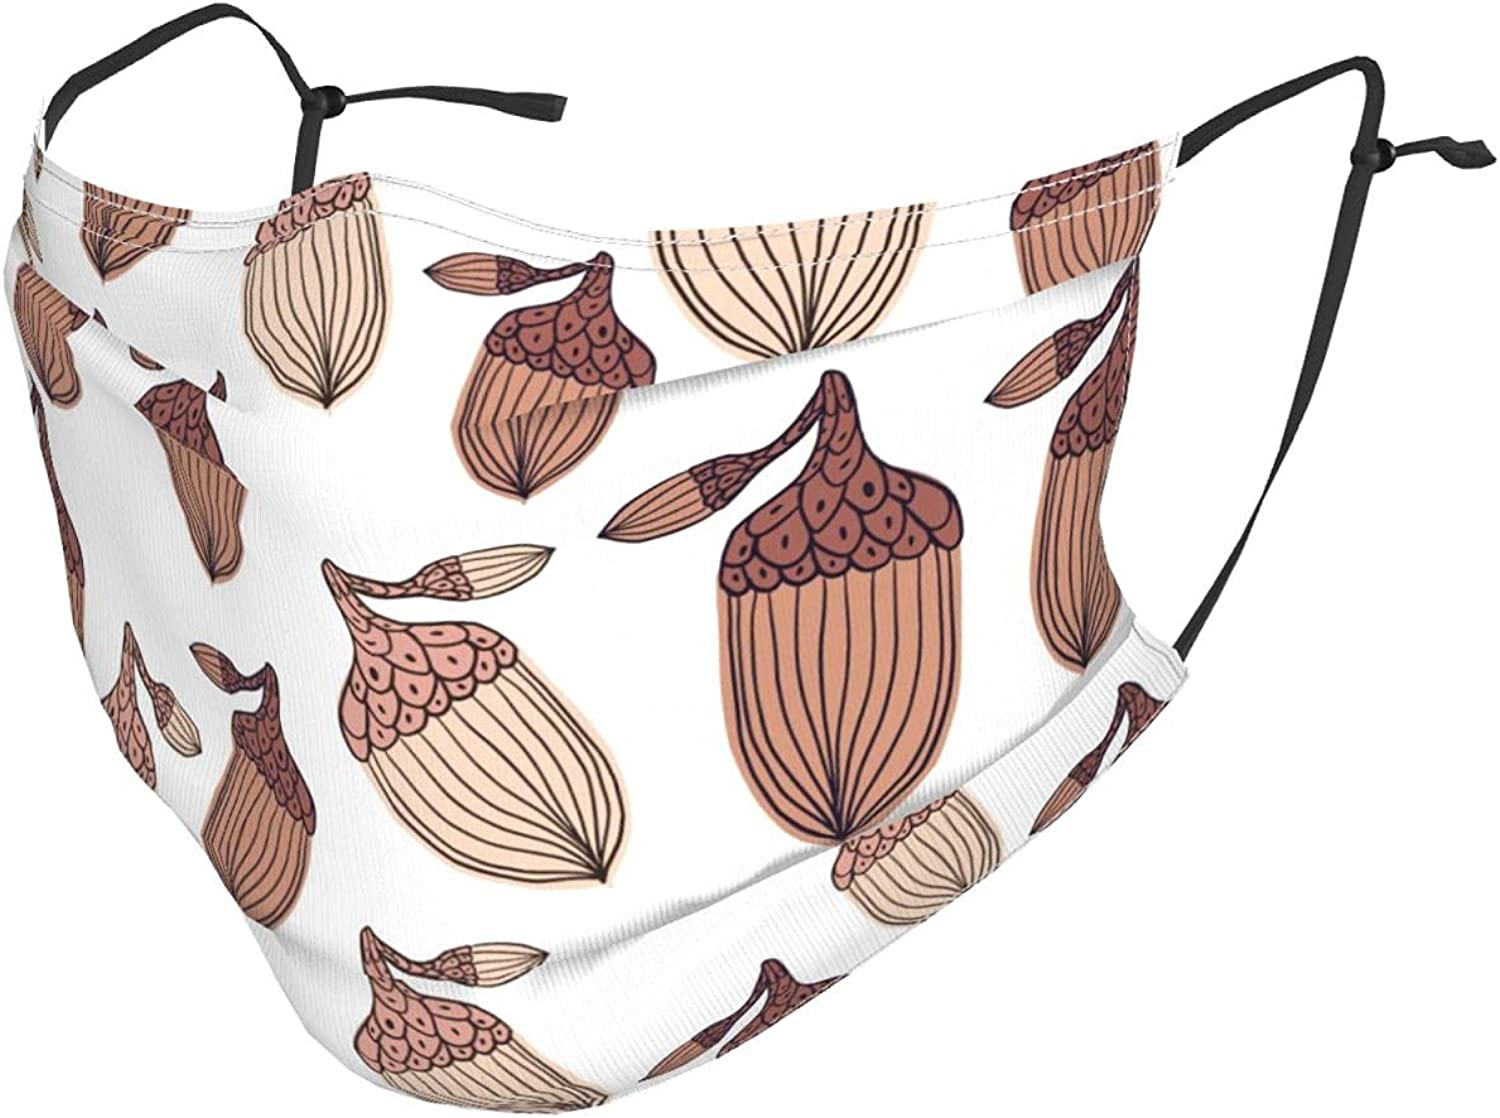 Sketch Acorn Pattern Adjustable Reusable Face Masks with Filter Pocket,Windproof Dust-Proof Washable Face Bandanas Balaclava Masks with Shield for Adults Kids Women Men